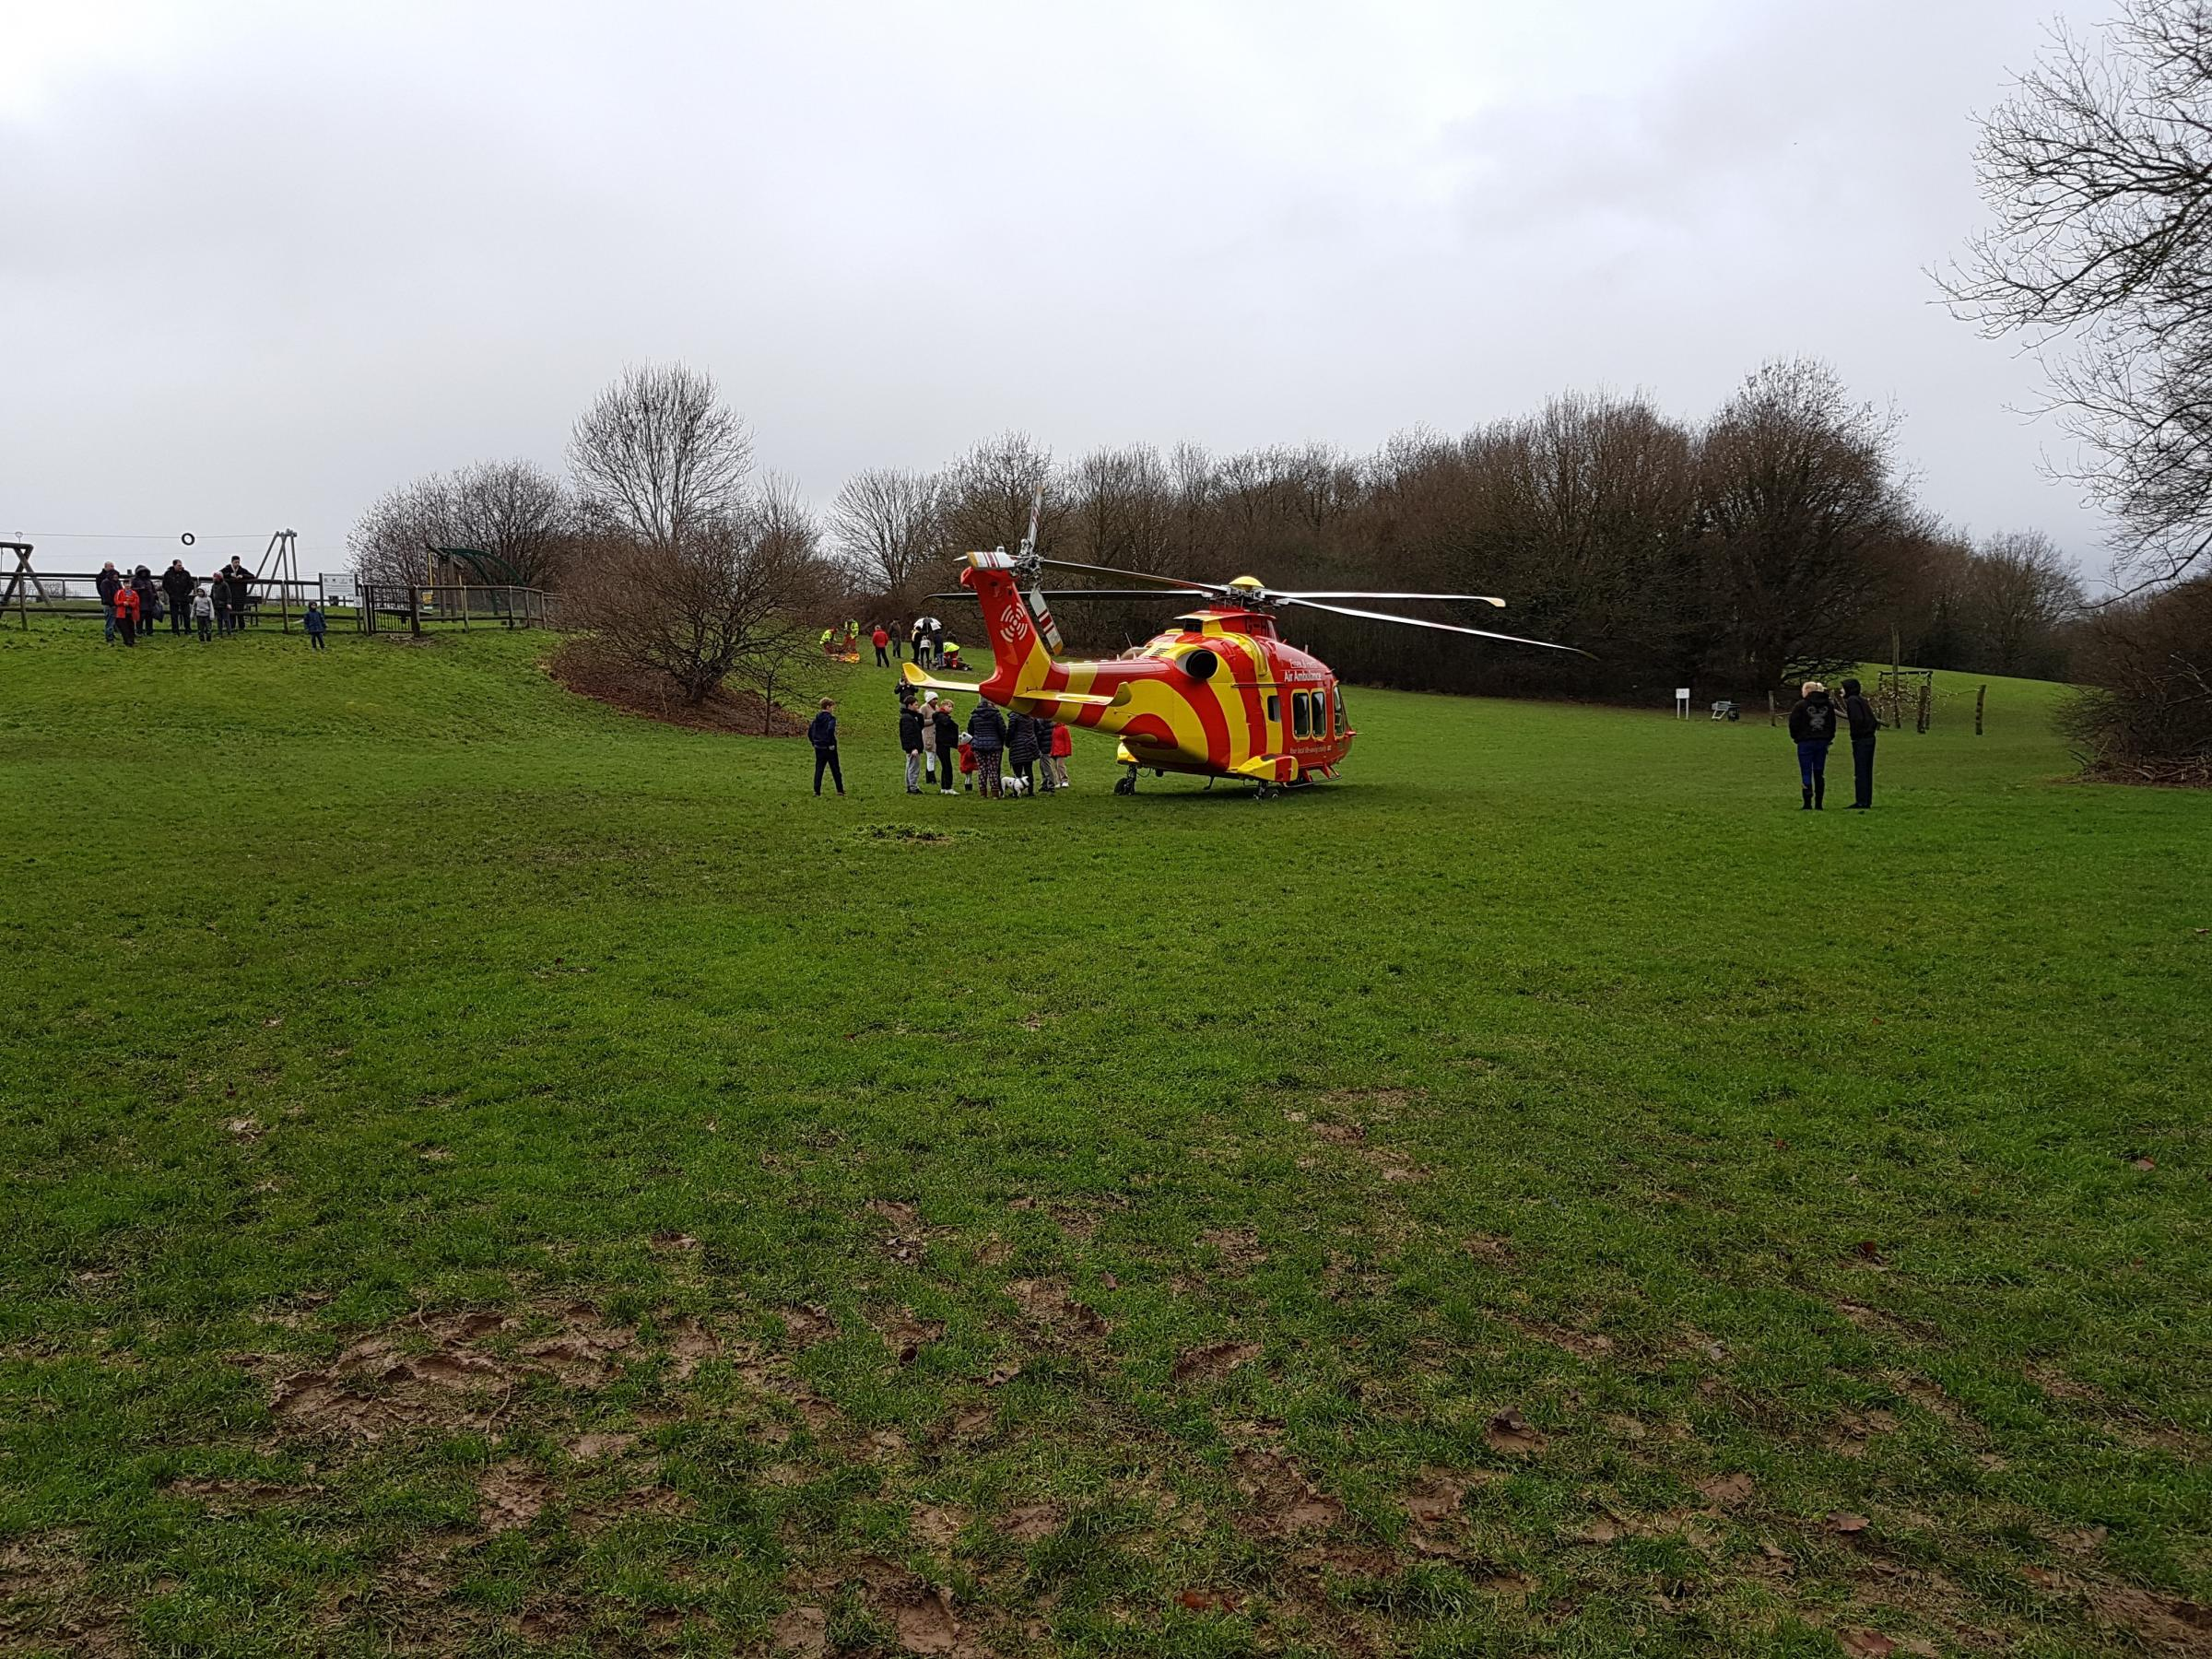 An air ambulance landed in Asburnham playpark on New Year's Day. Photo by Stephen King.